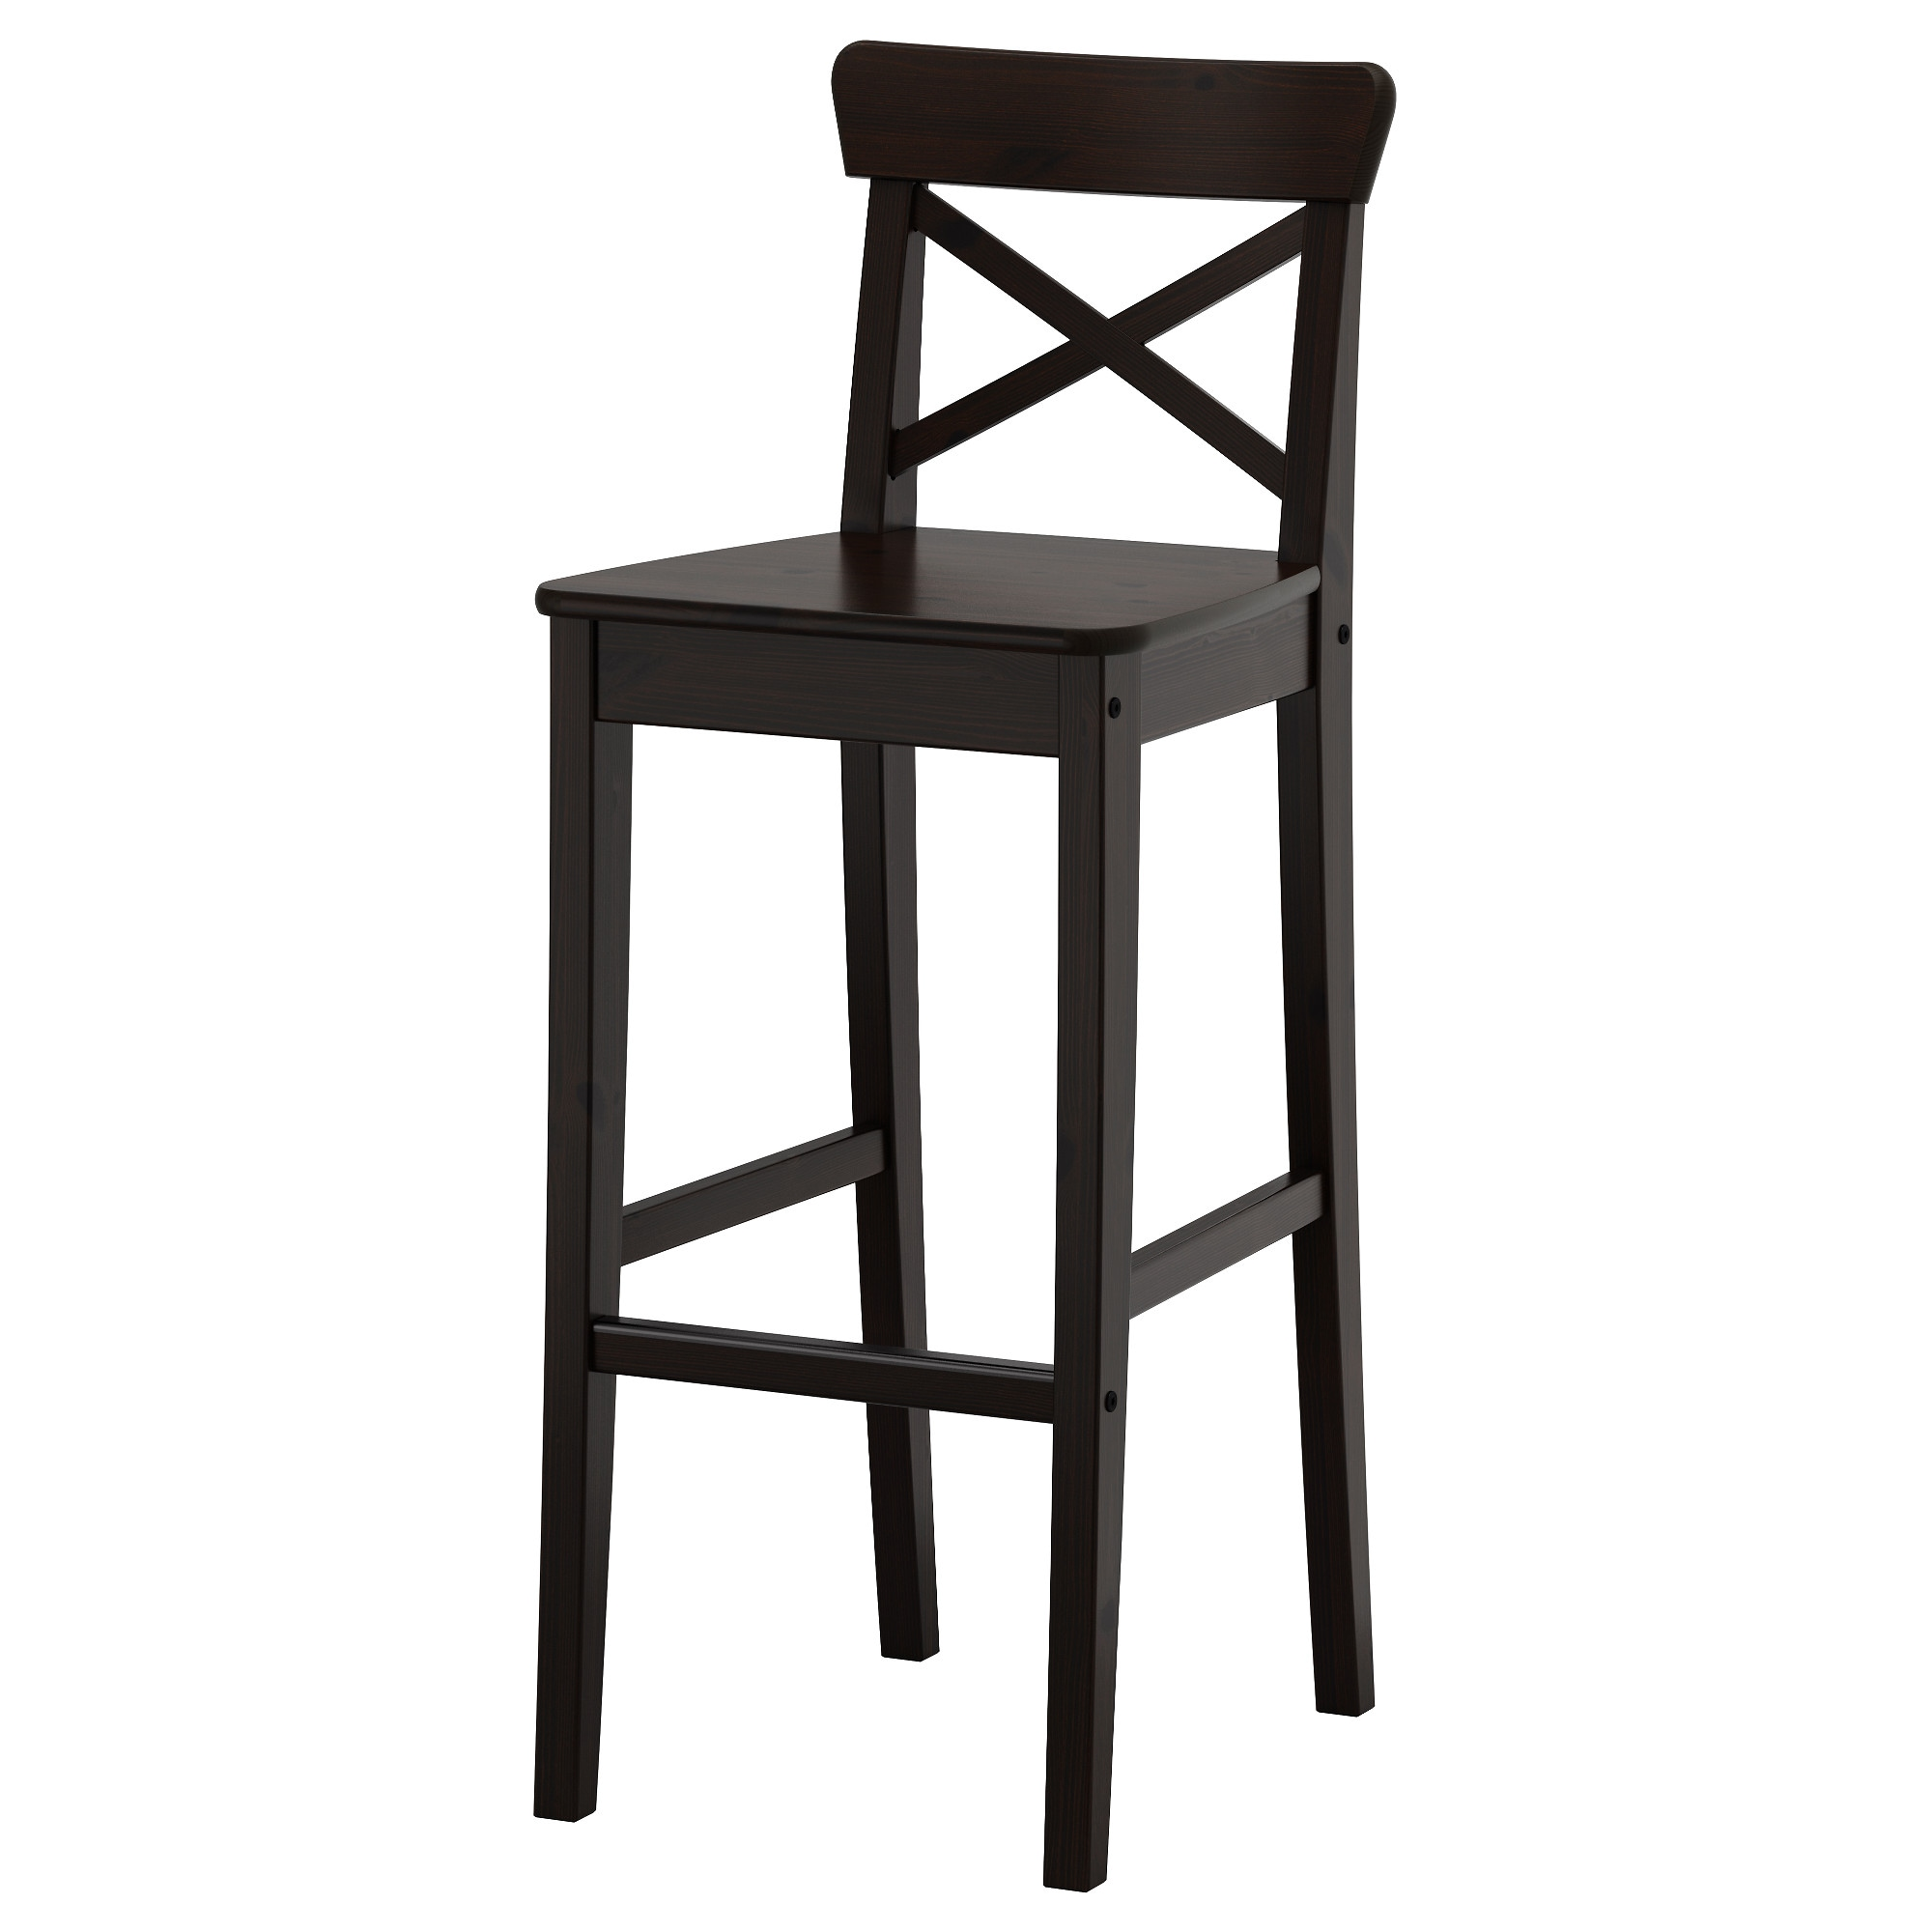 INGOLF bar stool with backrest brown black Tested for lb Width